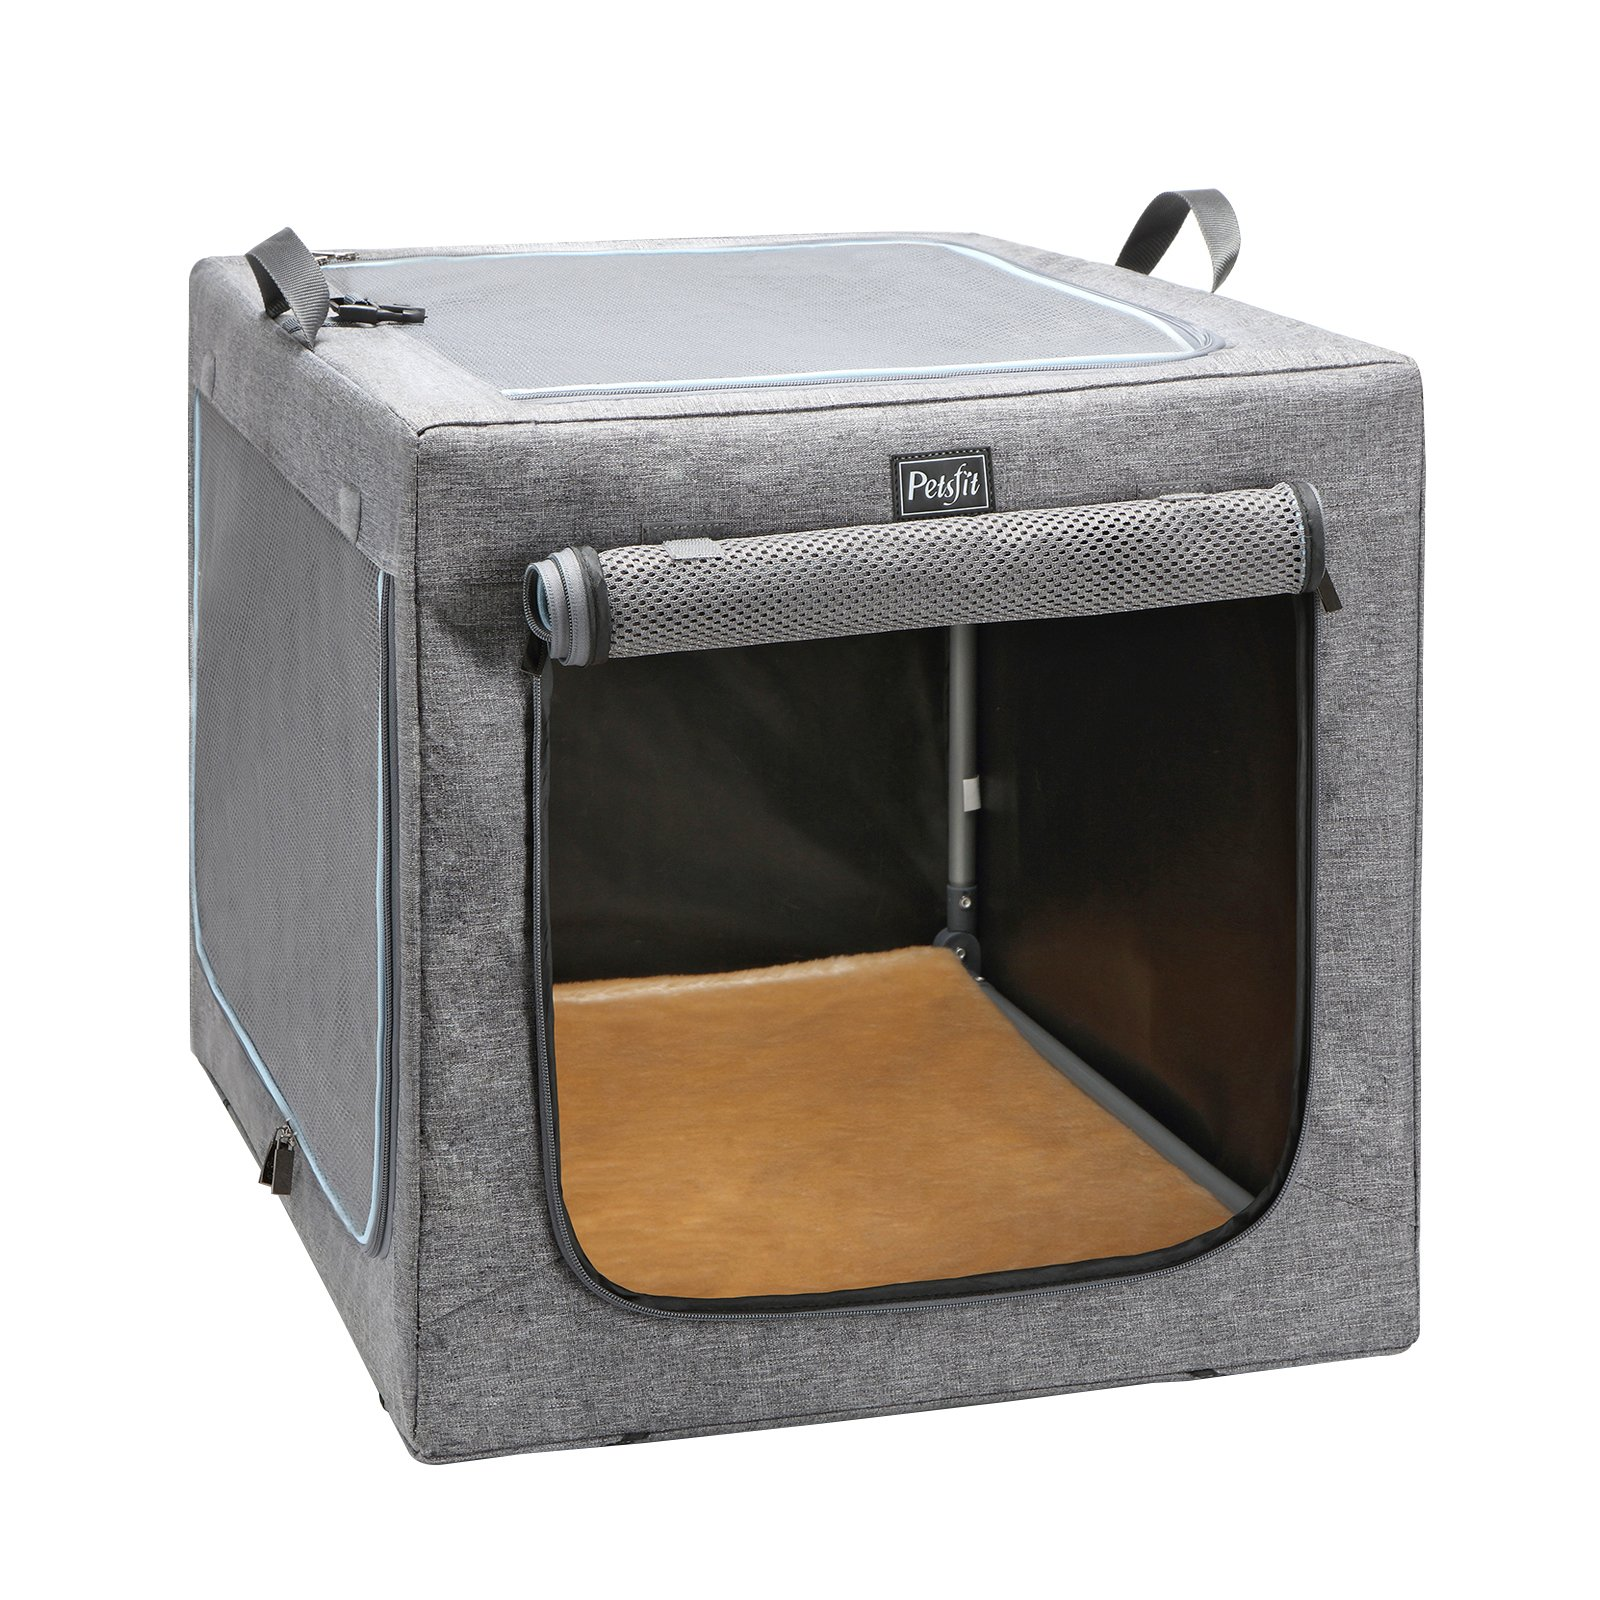 Petsfit 30x20x19 Inches Travel Pet Home Indoor/Outdoor for Medium Dog Steel Frame Home,Collapsible Soft Dog Crate(Gray) by Petsfit